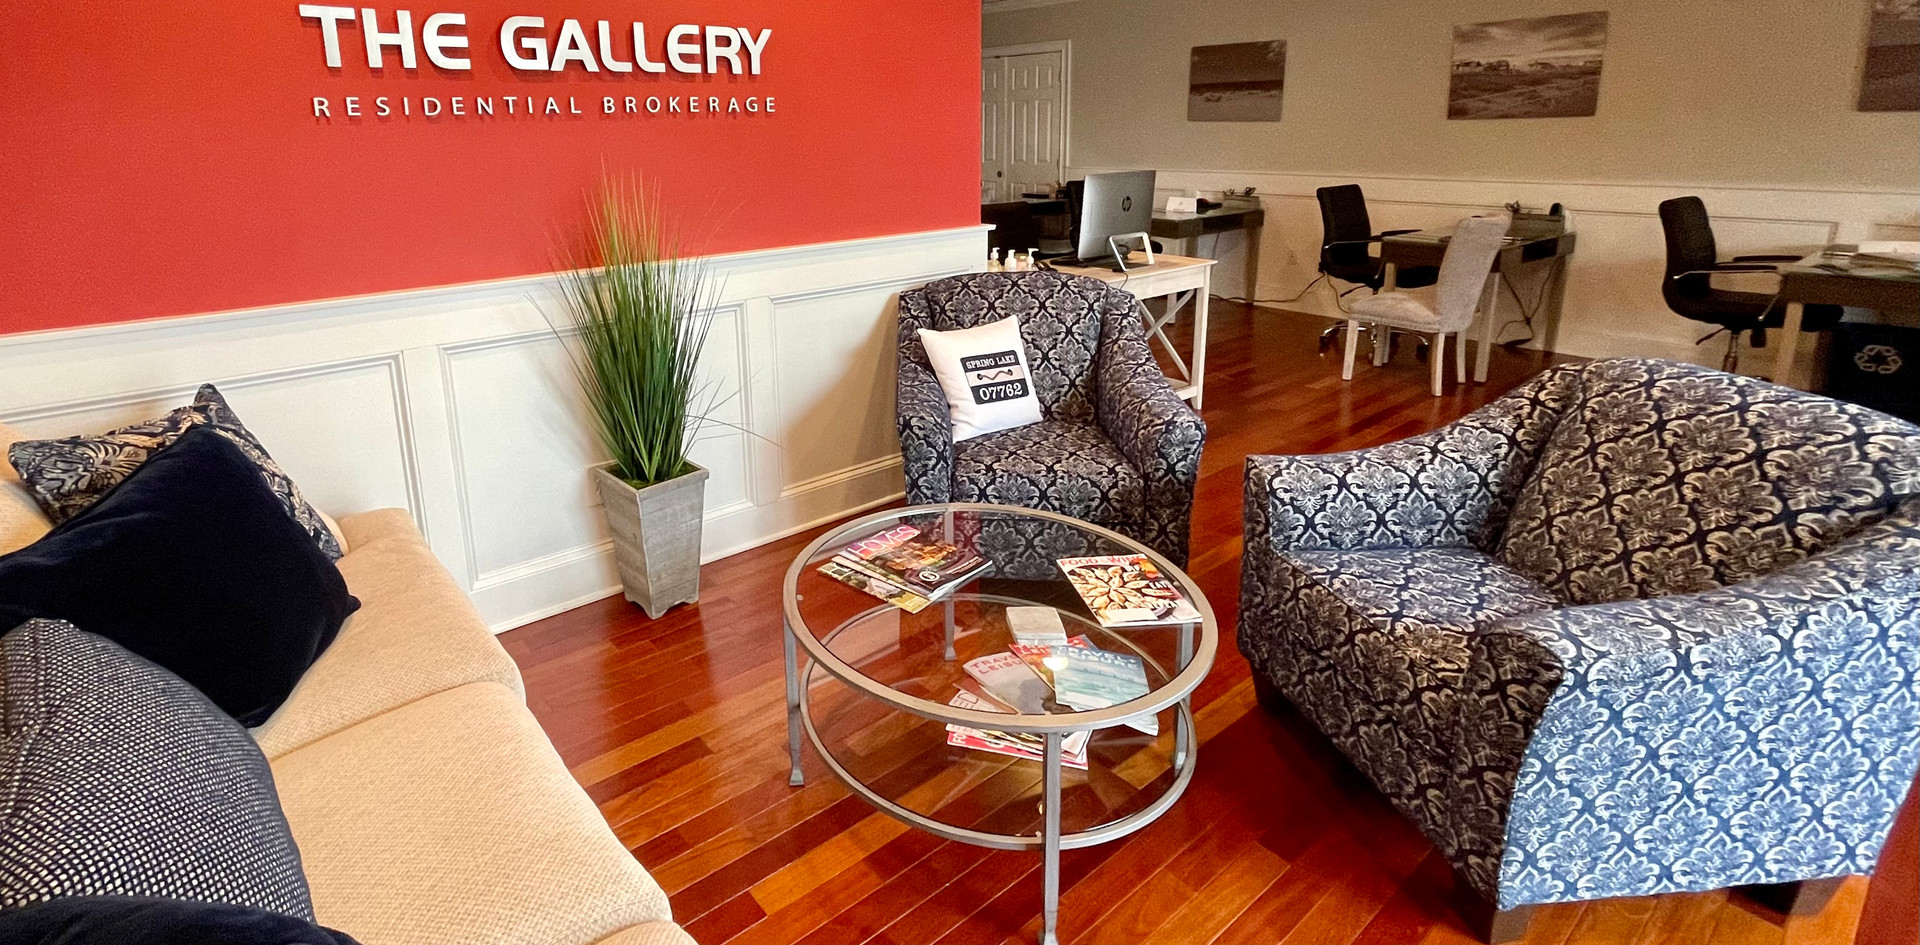 The Gallery's Spring Lake office